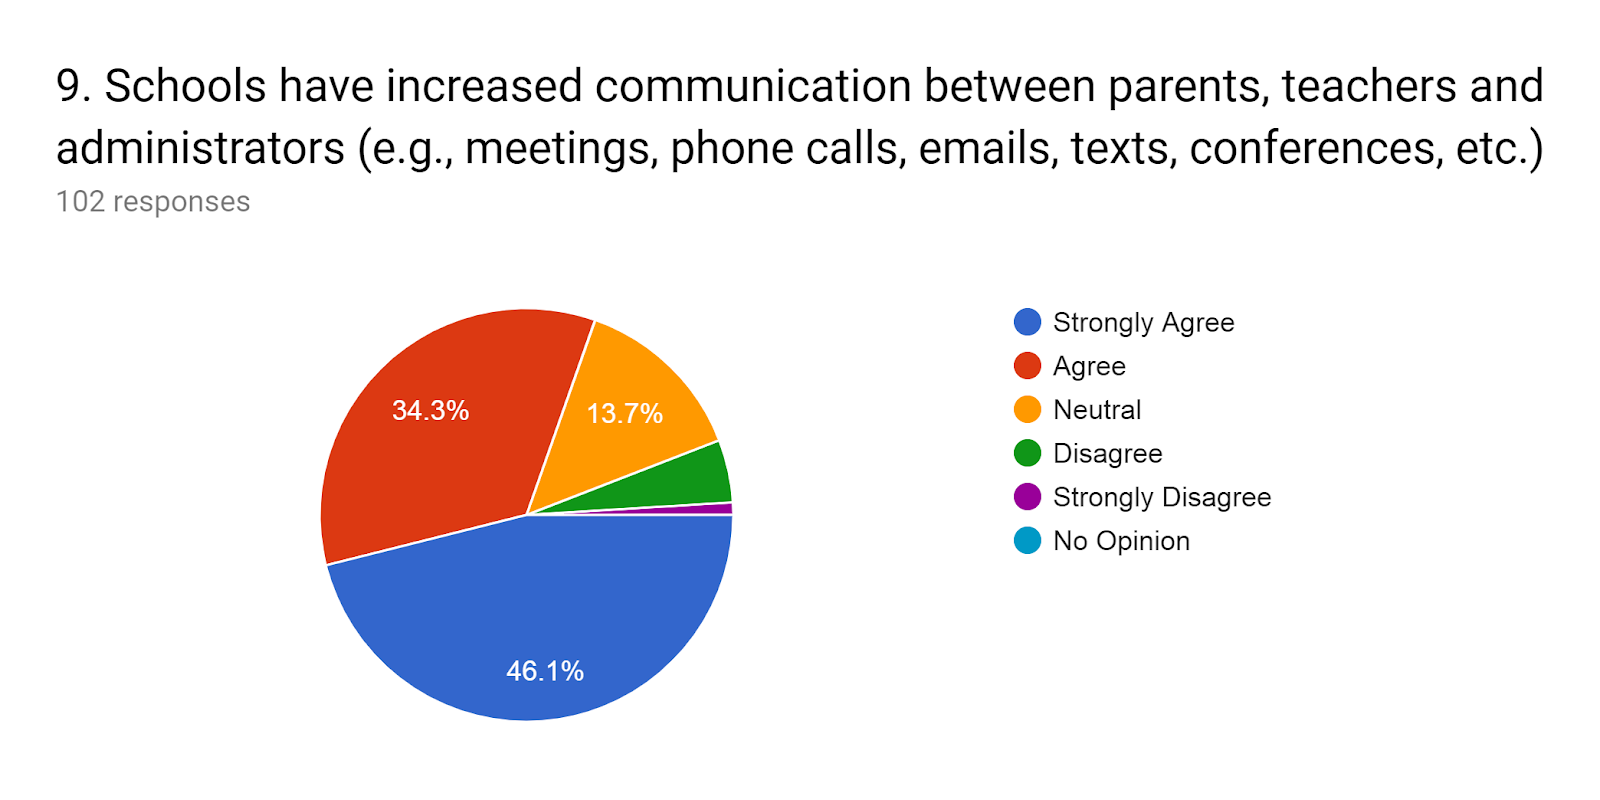 Forms response chart. Question title: 9.Schools have increased communication between parents, teachers and administrators (e.g., meetings, phone calls, emails, texts, conferences, etc.). Number of responses: 102 responses.